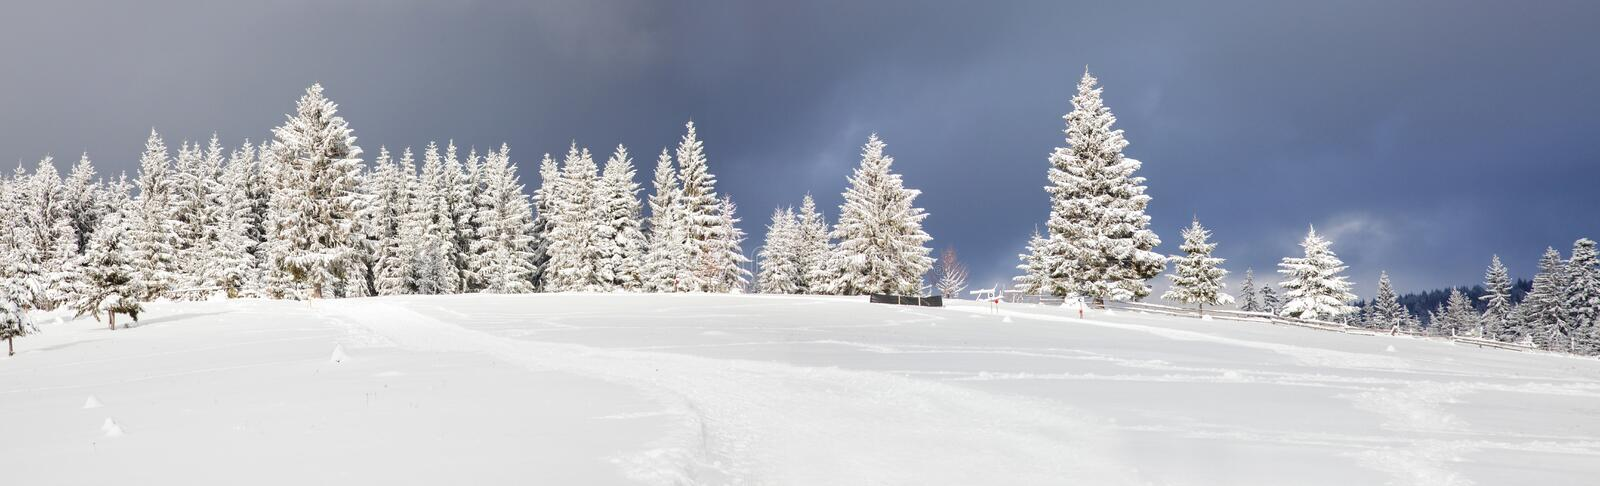 amazing Christmas background with snowy firs winter landscape royalty free stock photo